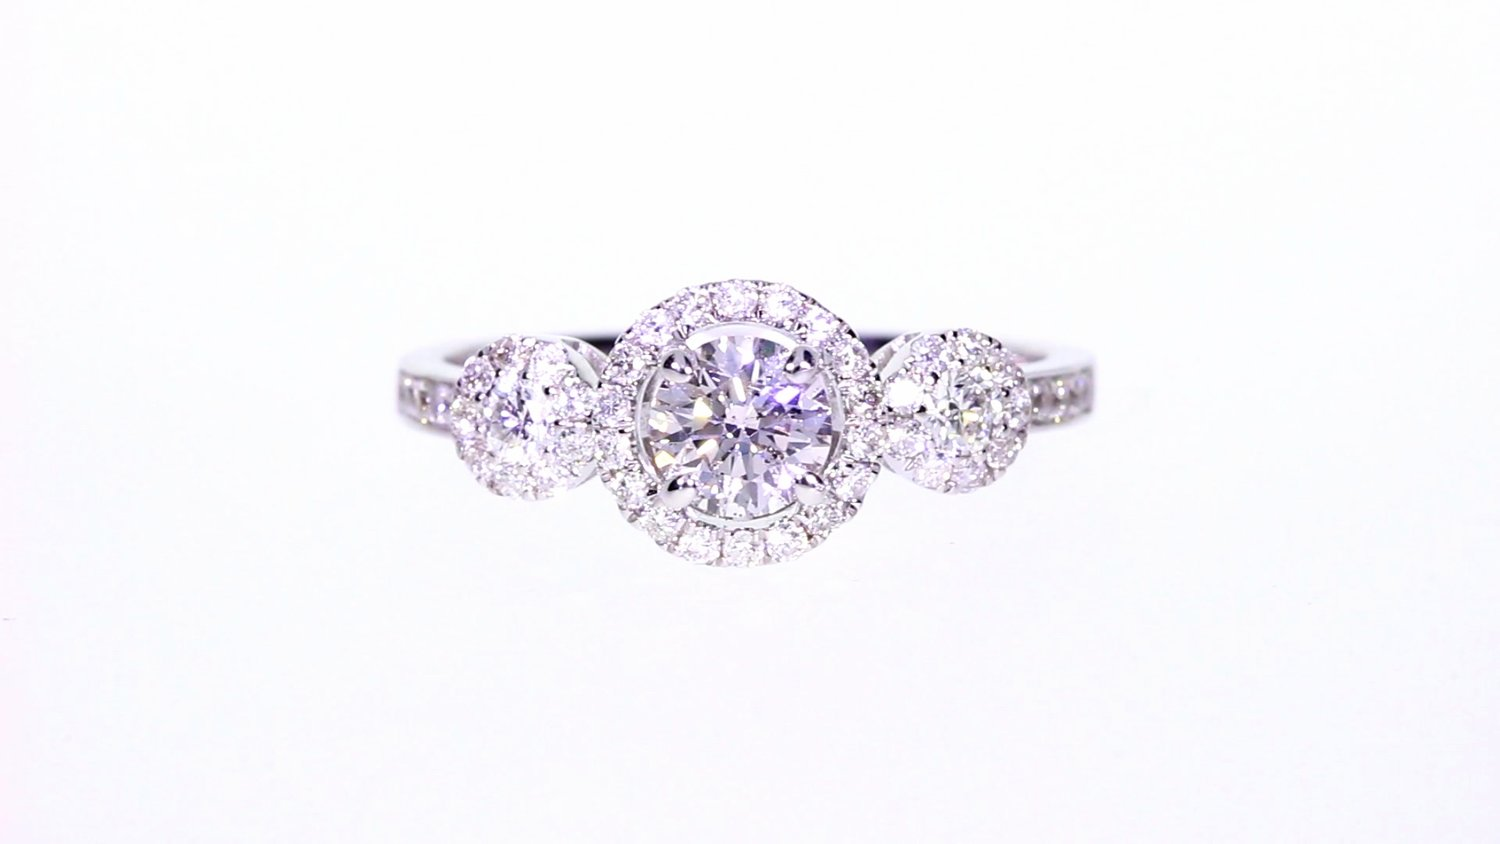 092 Ctw 3stone Halo Round Diamond Engagement Ring In 18k White Gold